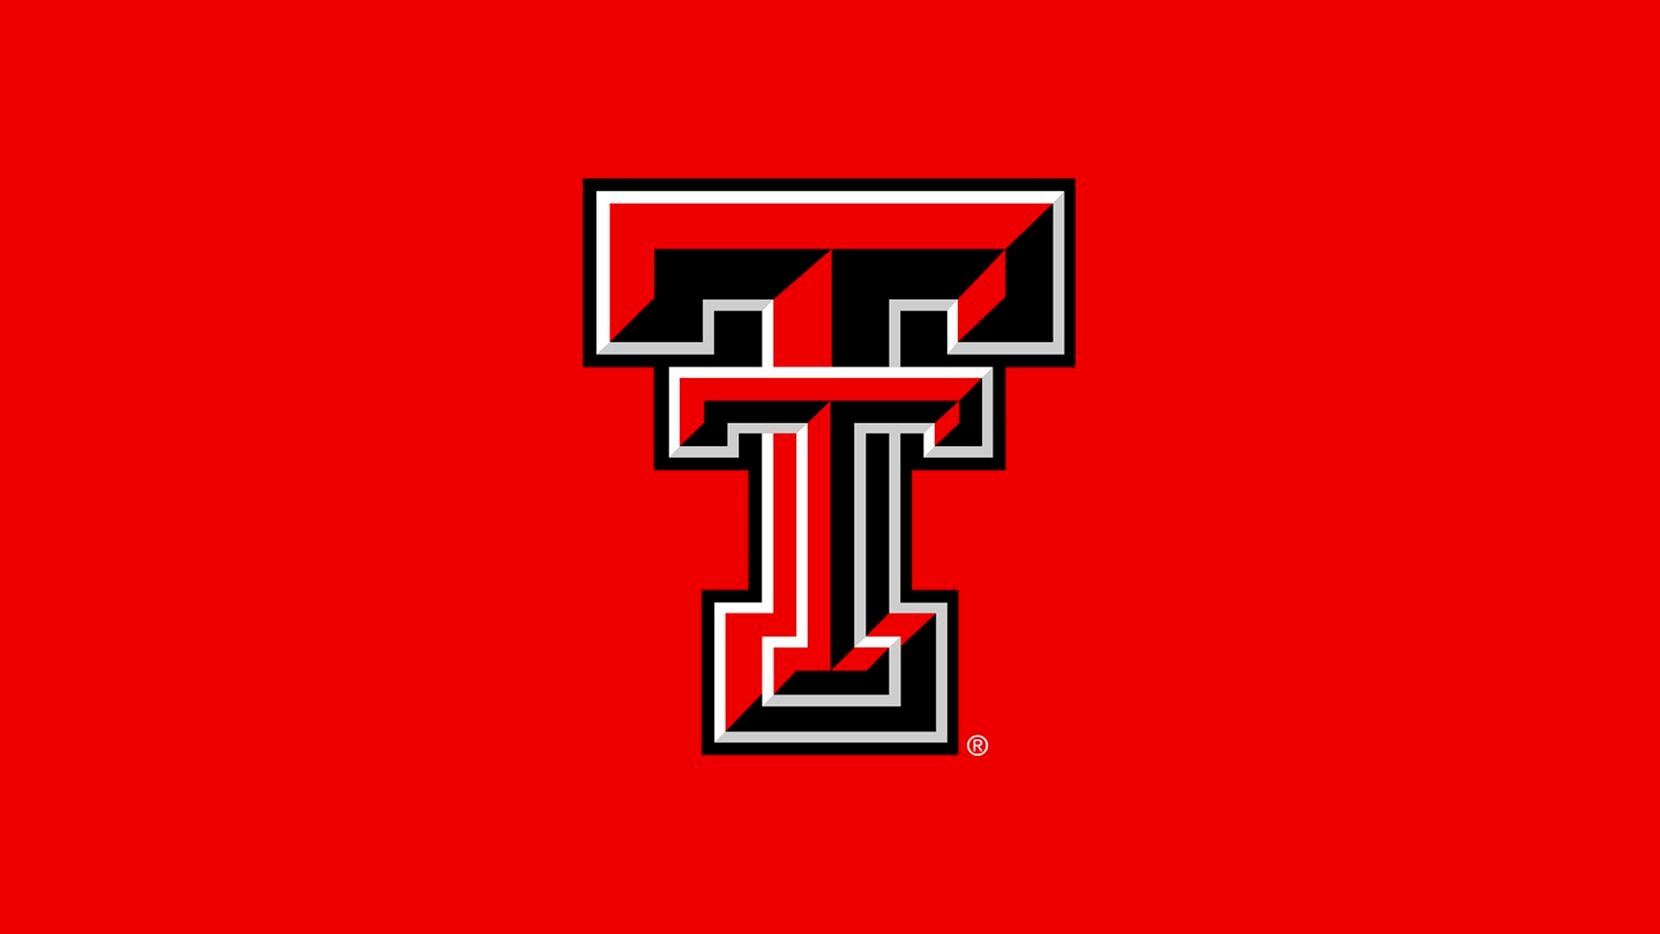 Texas Tech Red Raiders logo.